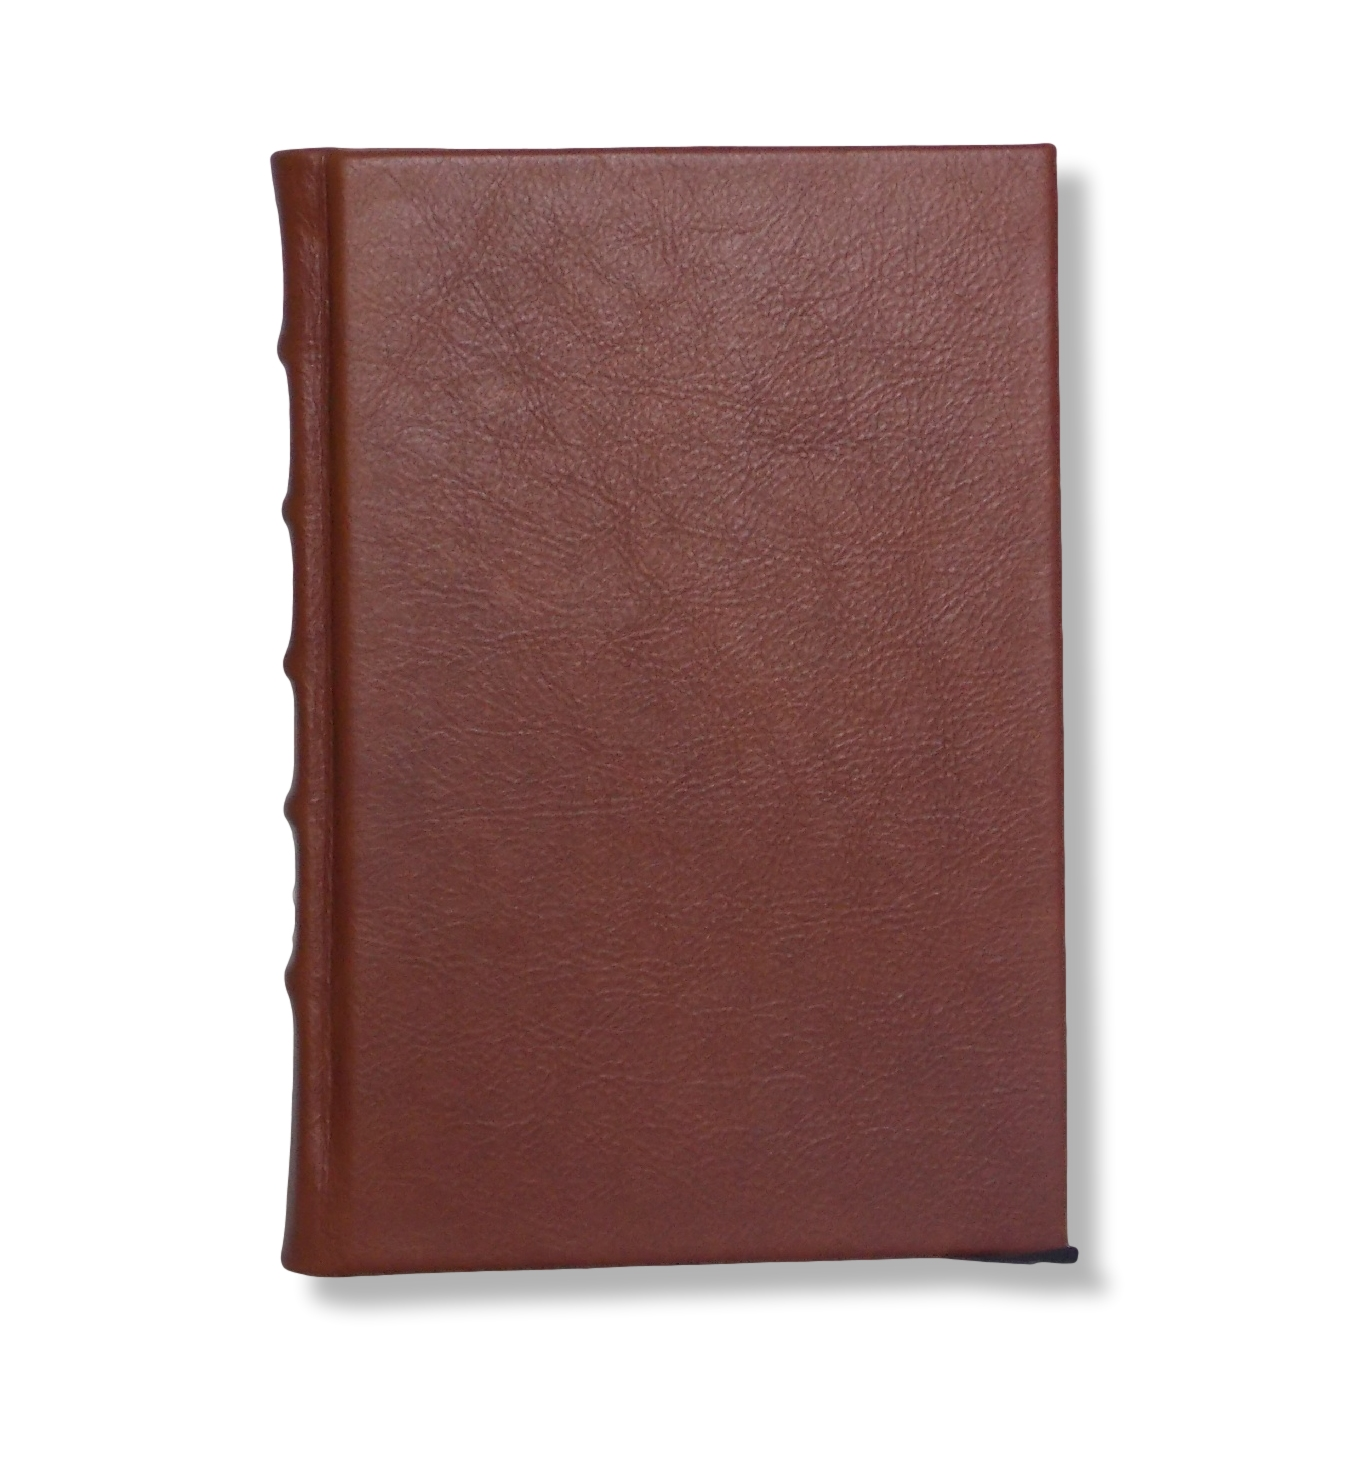 Full Leather Hard Bound Journal in Chestnut Brown  - Other colours and sizes available.  Ideal for embossing with names and titles. Priced from $150